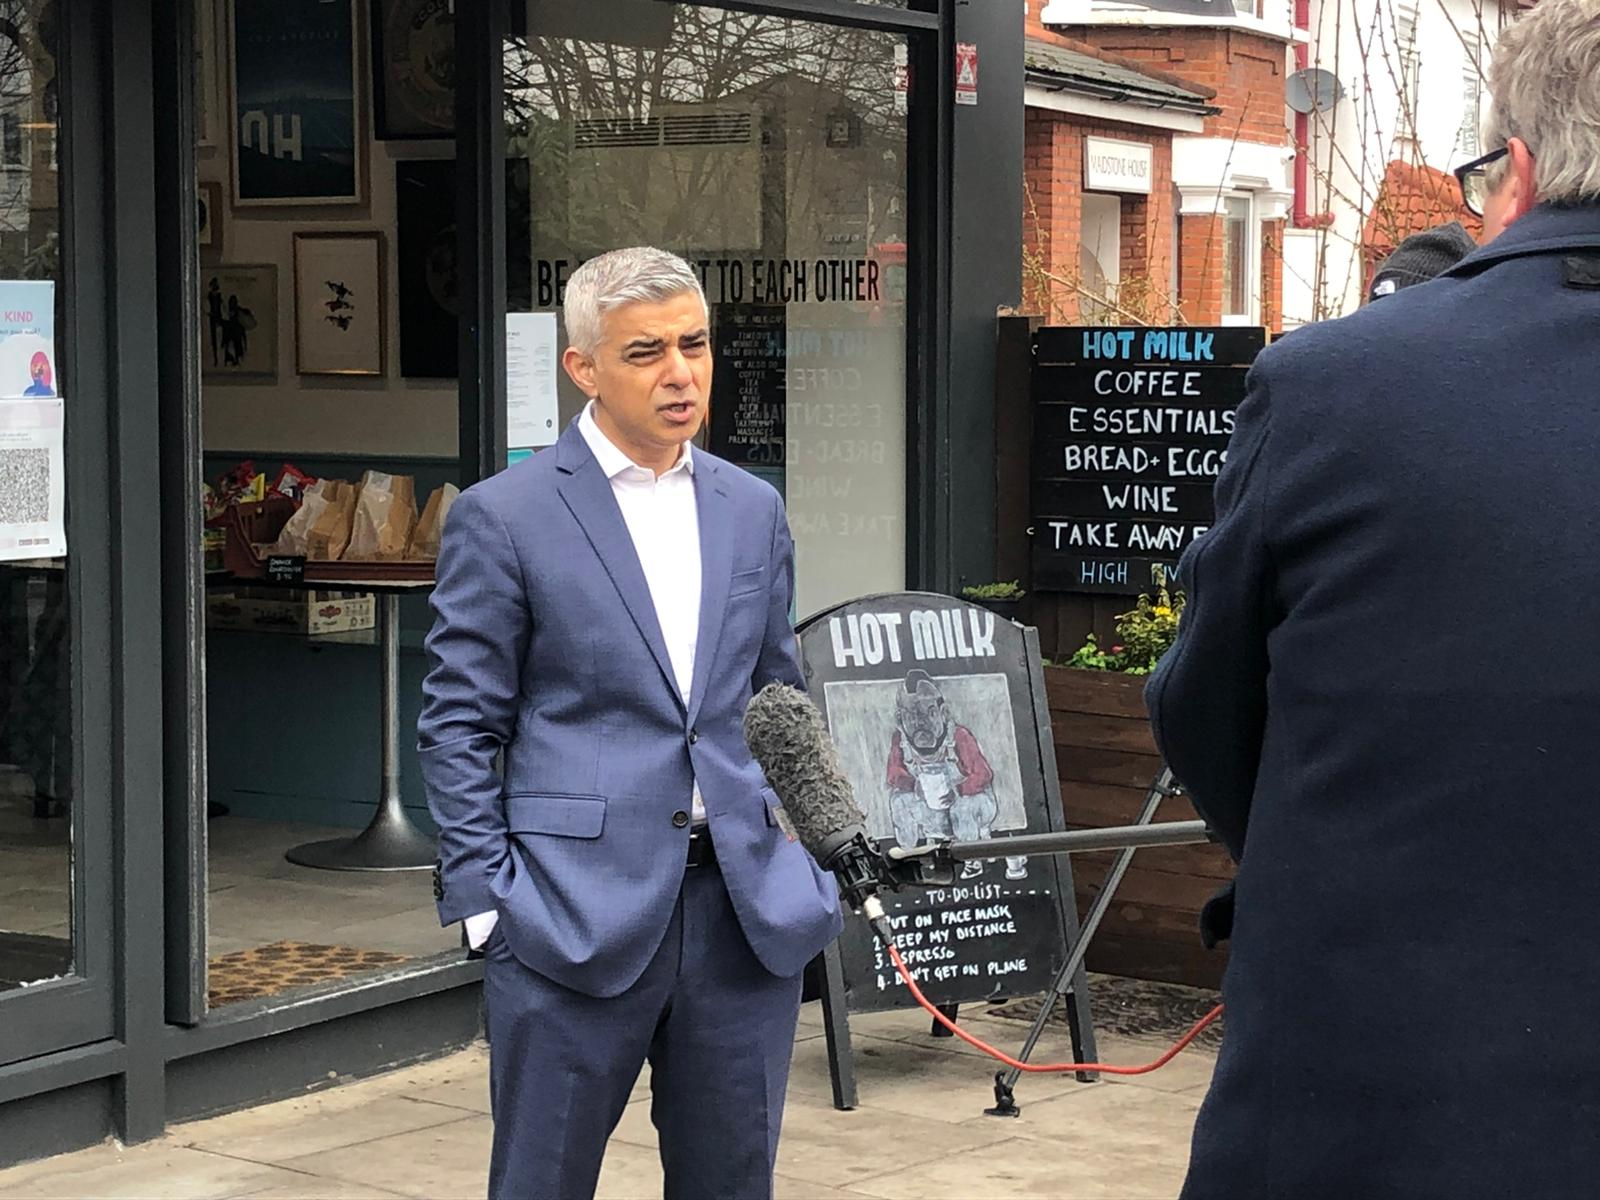 Sadiq Khan rules out driverless trains as a part of next TfL bailout